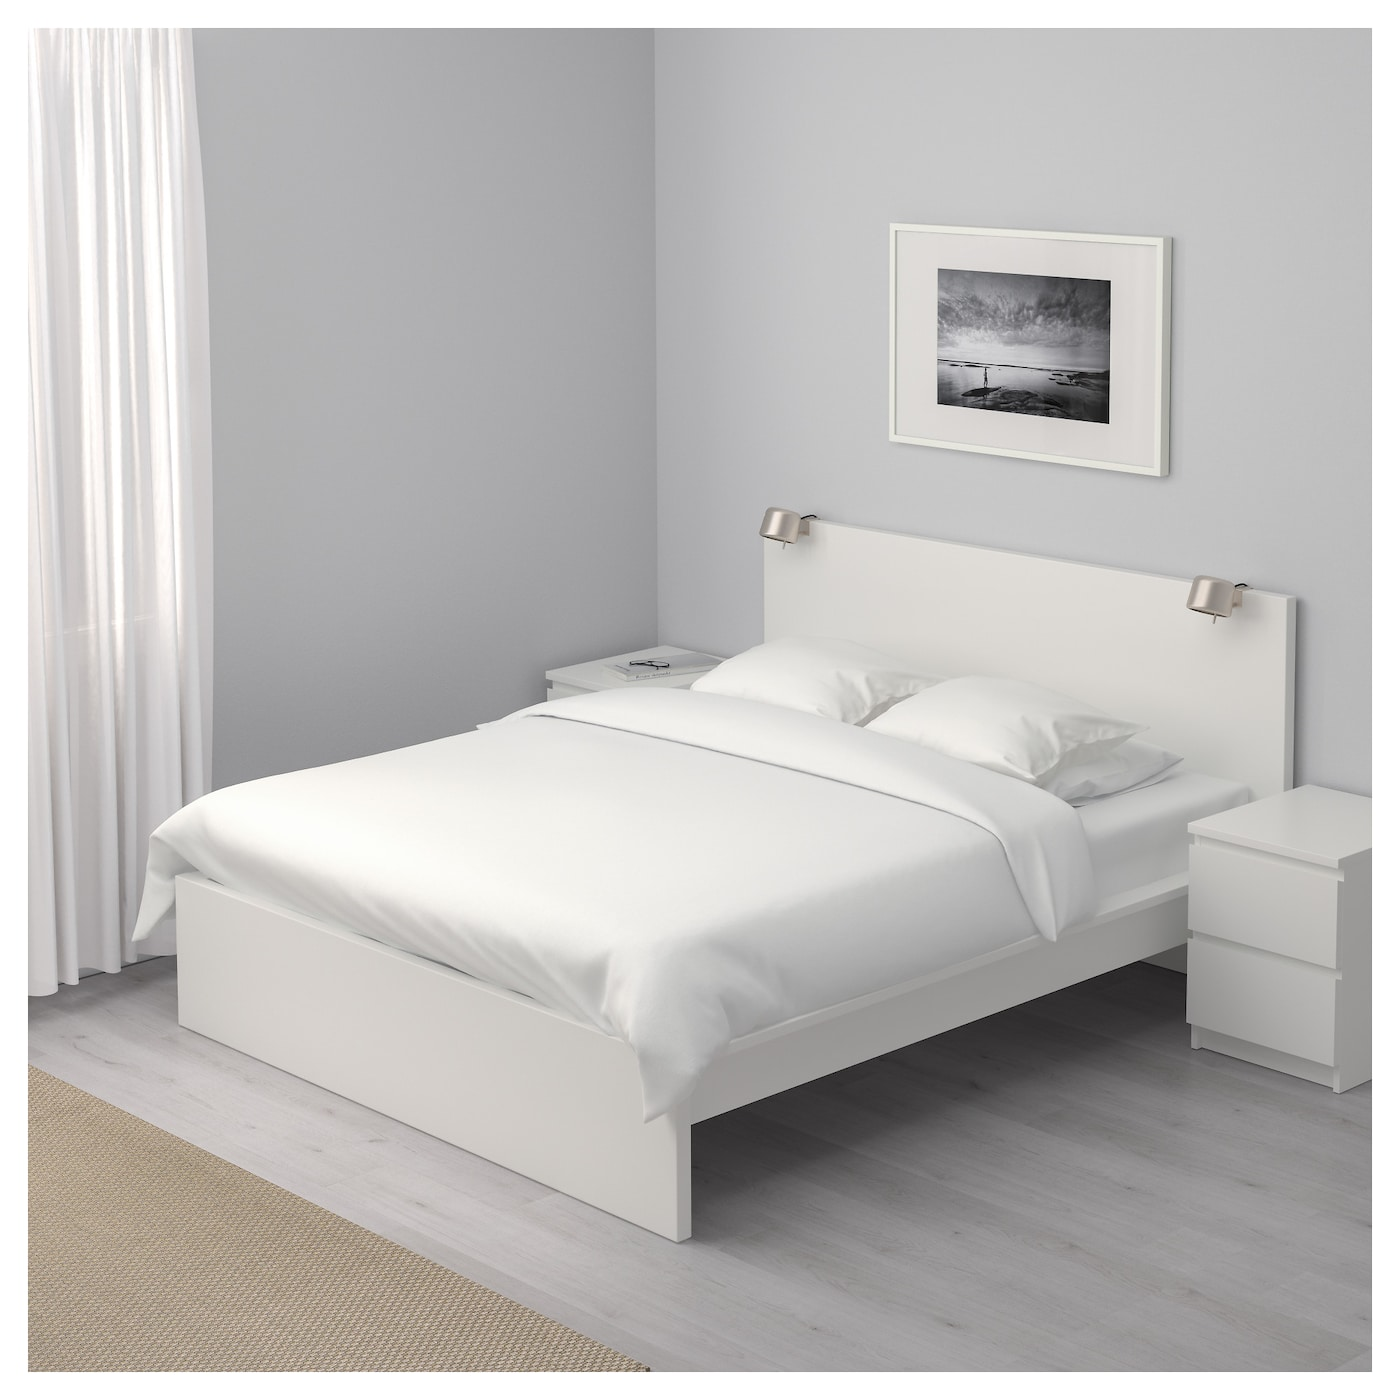 malm bed frame high white l nset standard king ikea. Black Bedroom Furniture Sets. Home Design Ideas